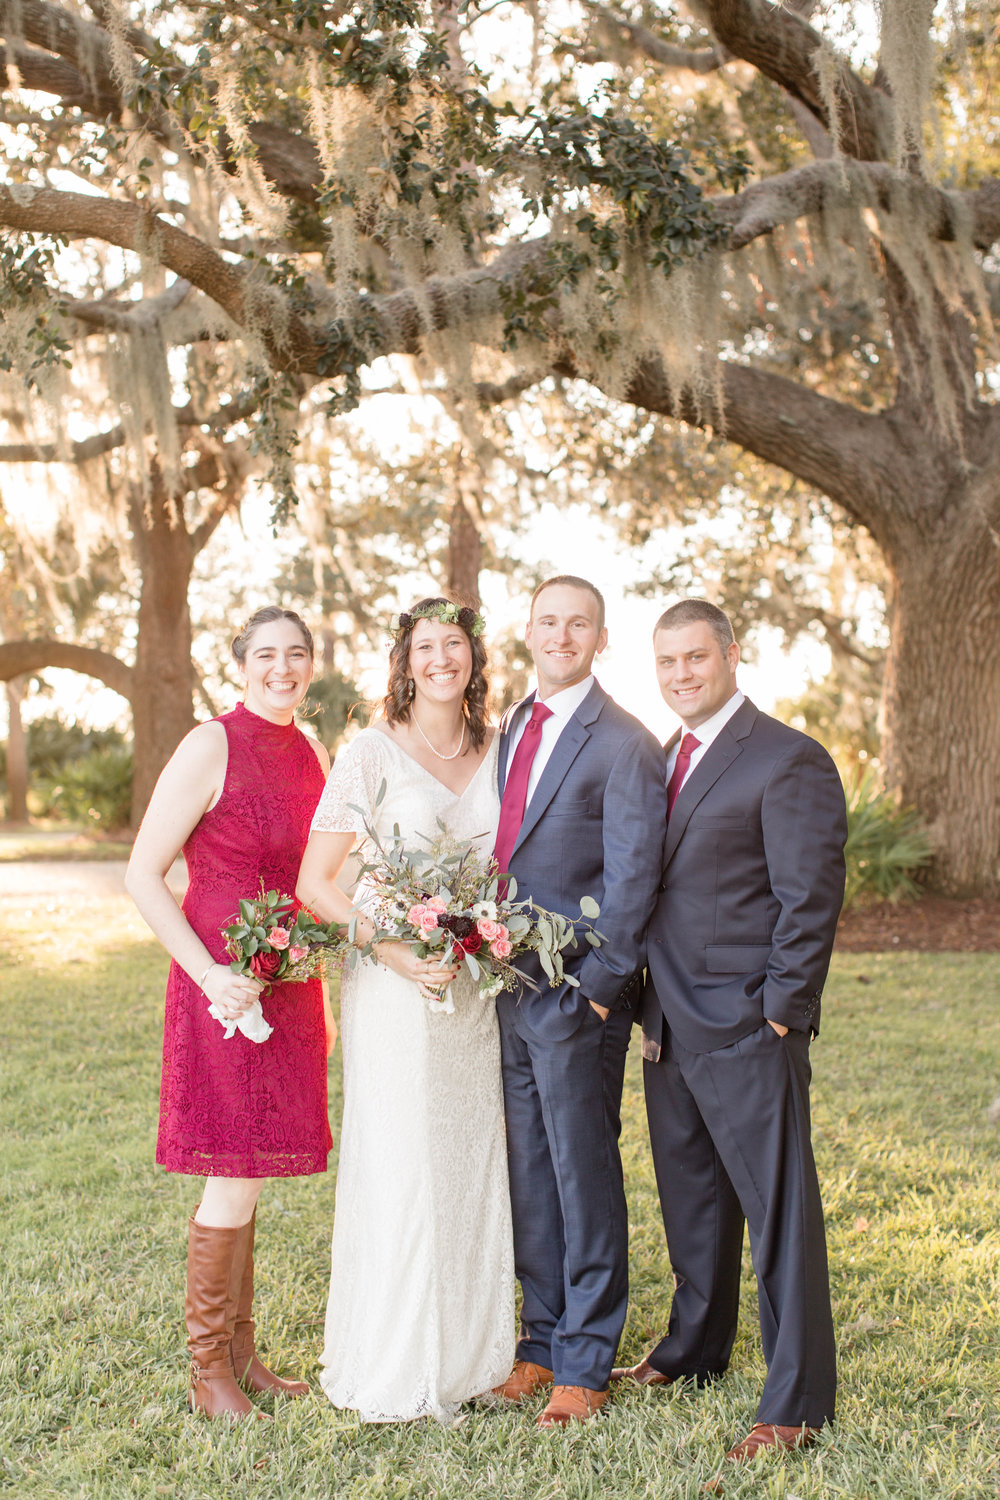 Kristen + Jonathan: Beautiful Beaufort Wedding on the River | Palmetto State Weddings